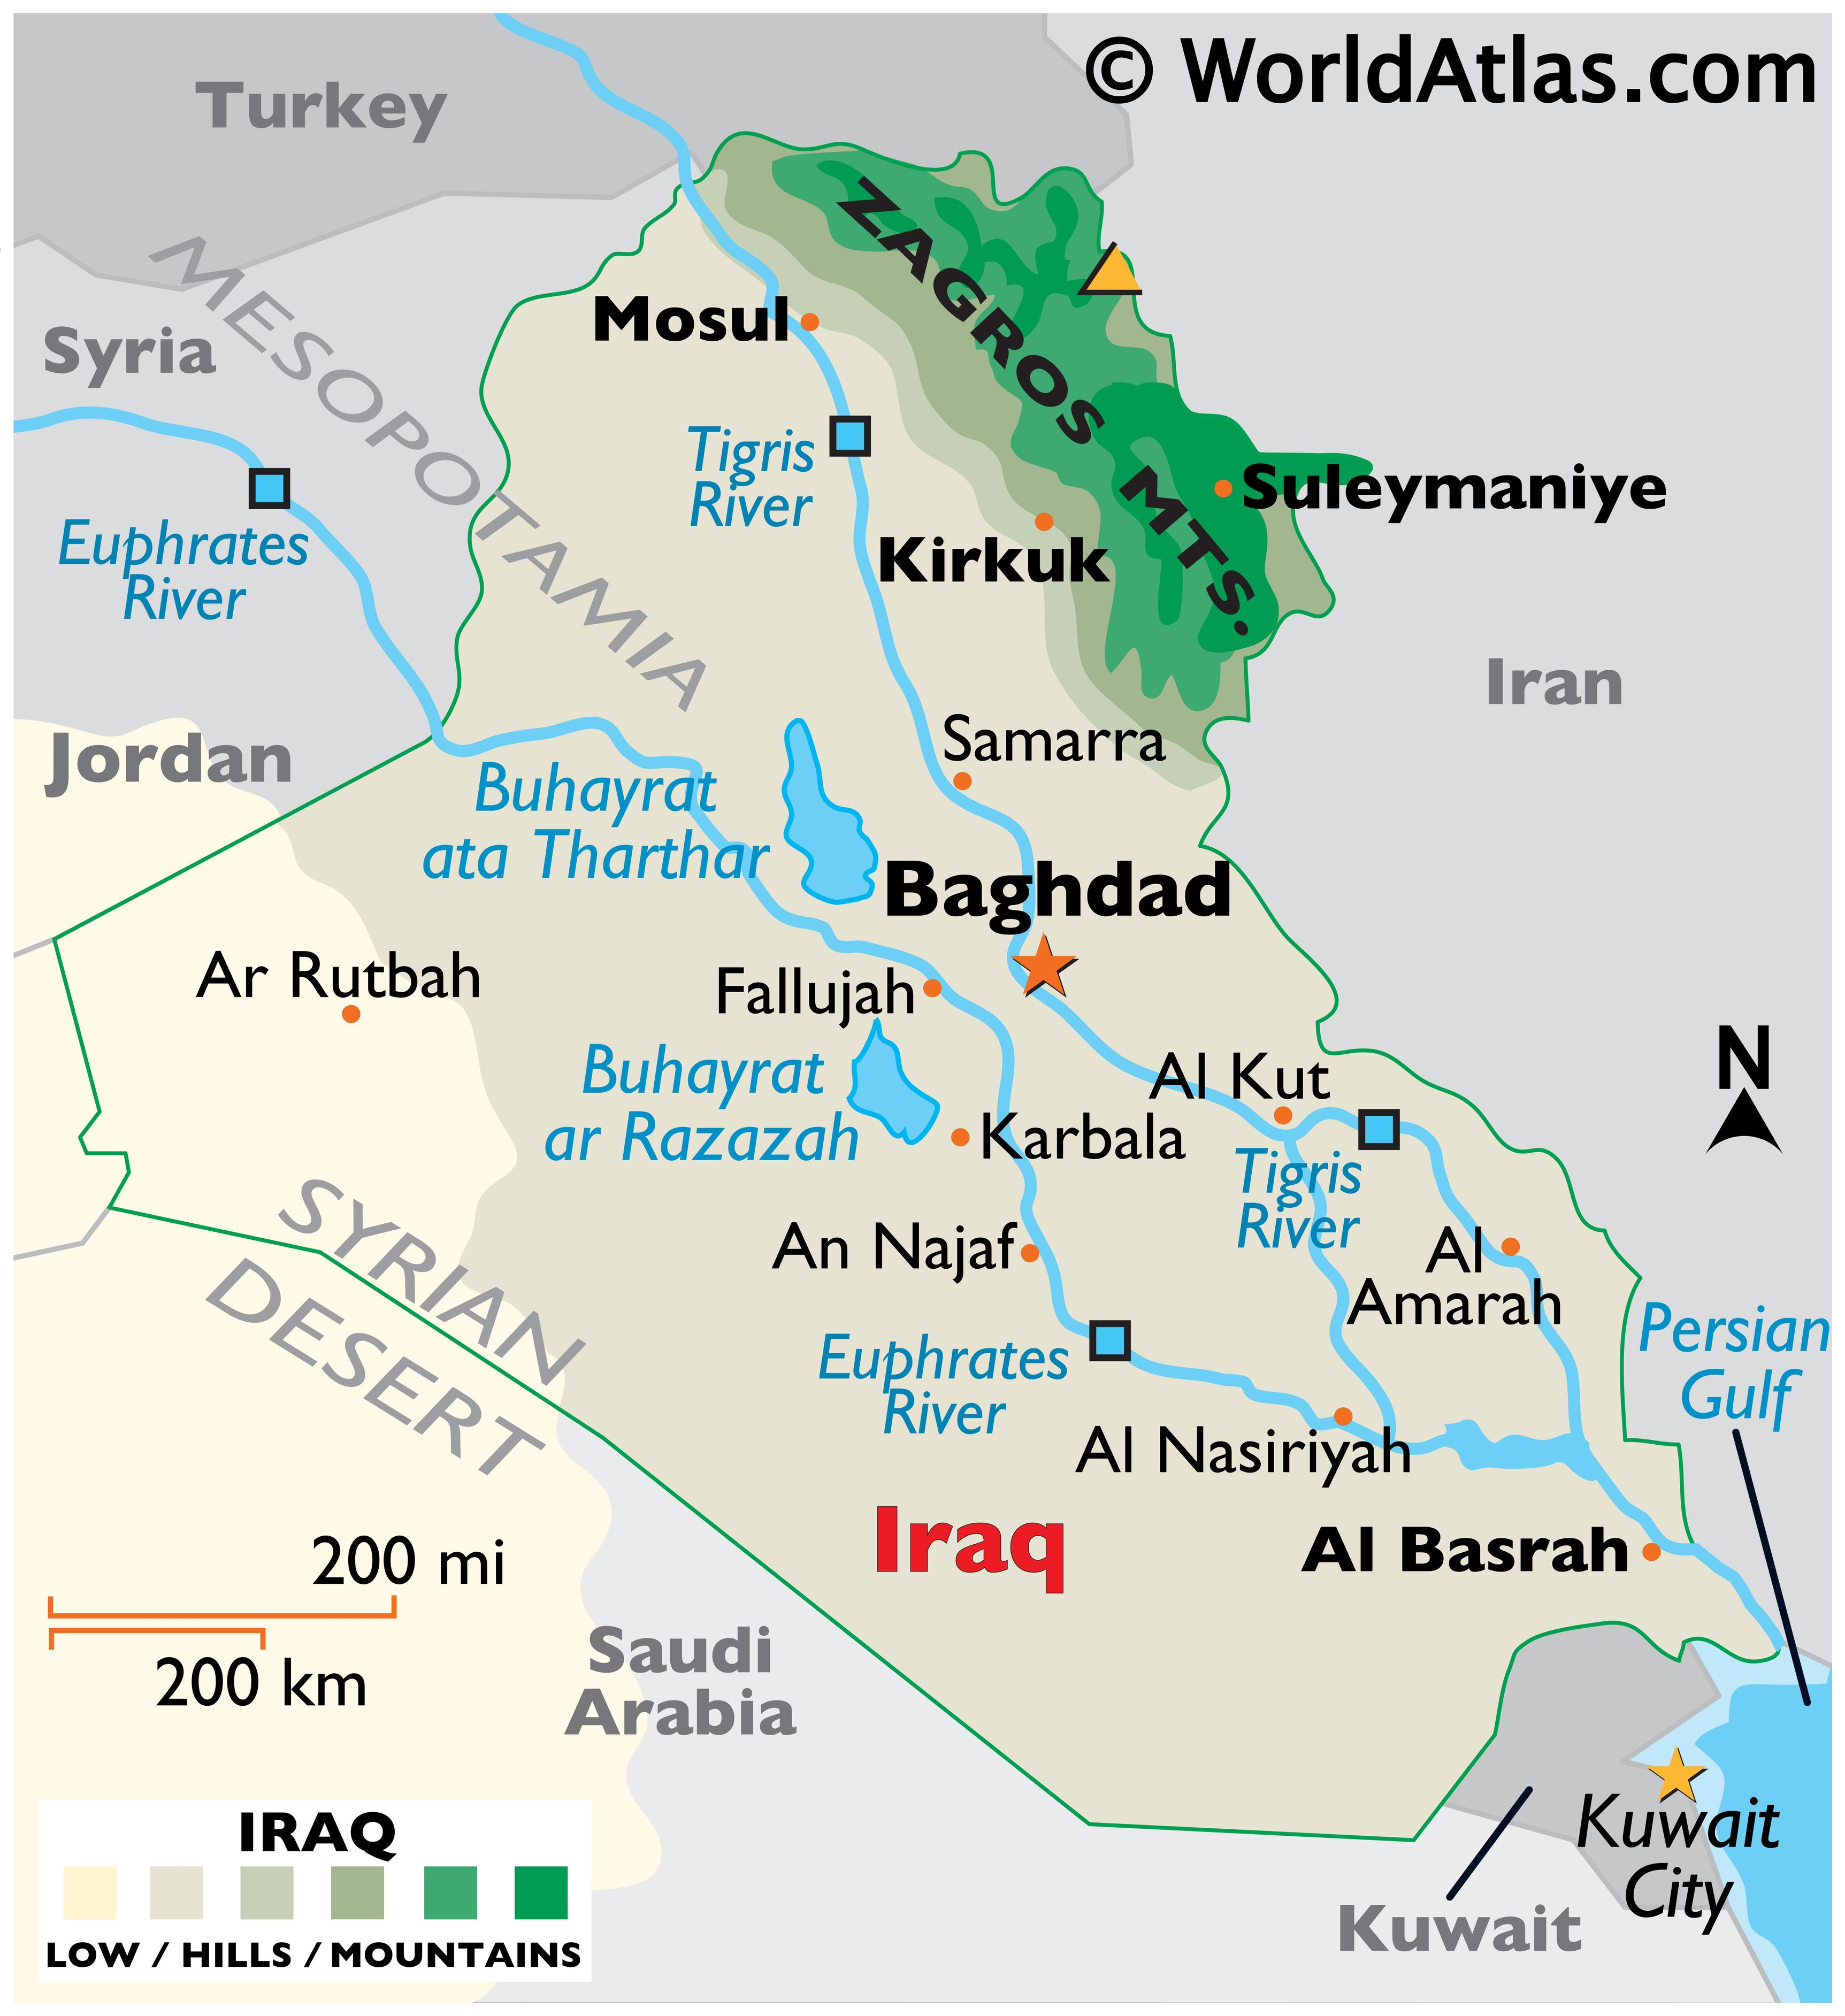 Physical Map of Iraq showing state boundaries, relief, the Zagros Mountains, major rivers, highest point, major lakes, important cities, and more.